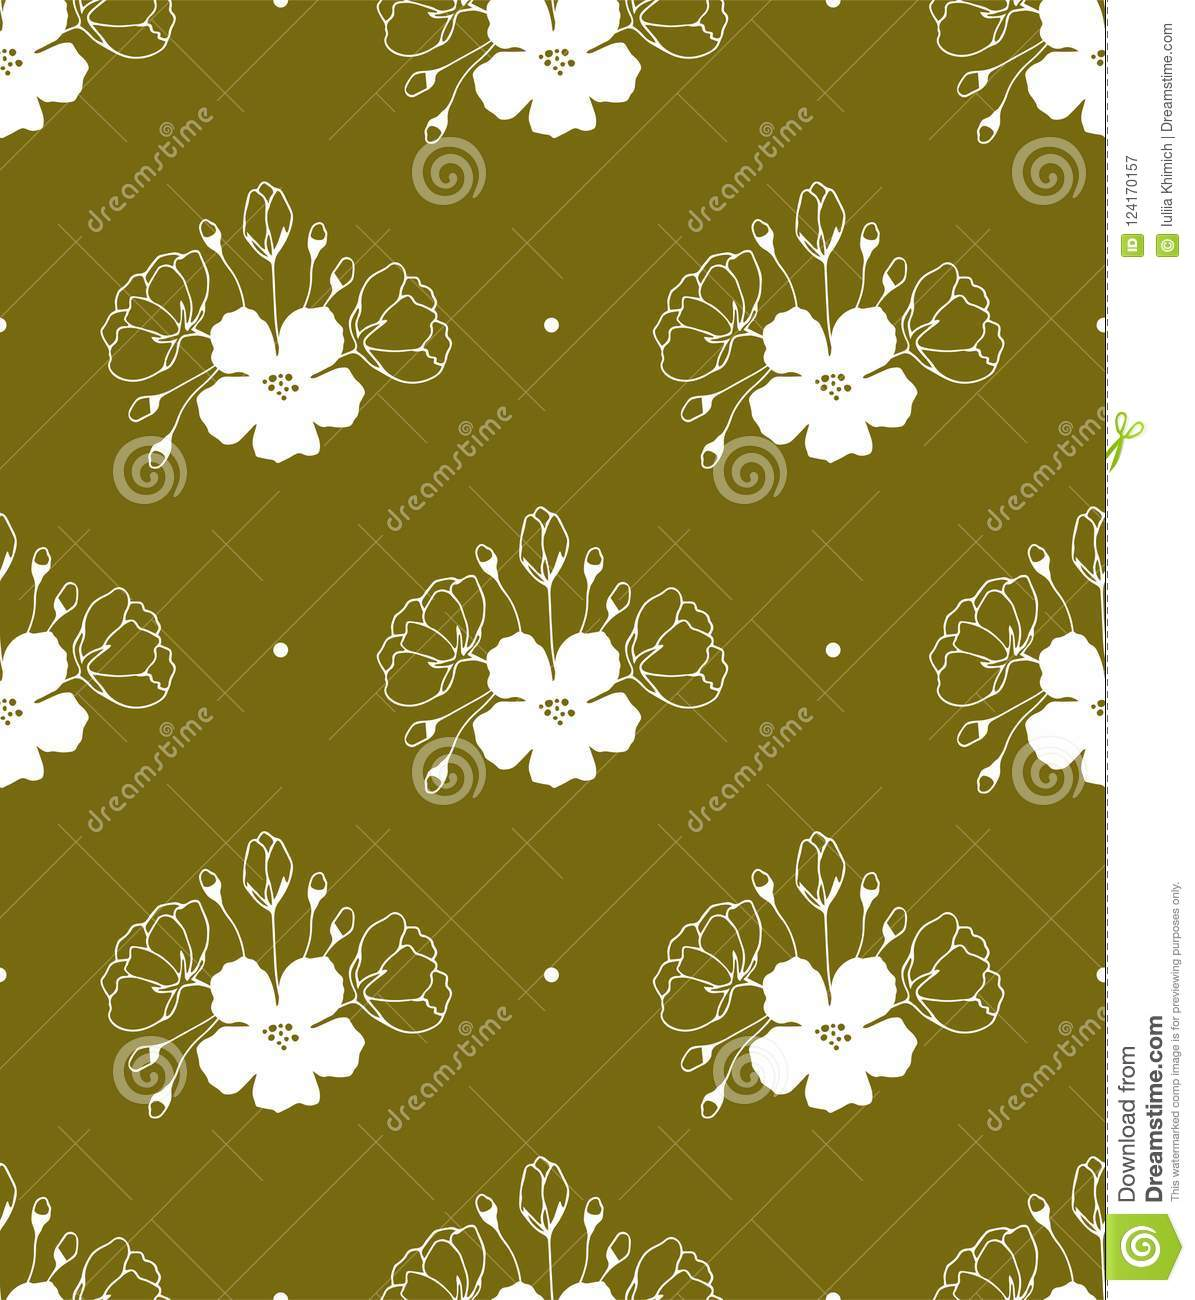 3ce41d086c Floral seamless pattern. Part of big flower collection of illustrations.  Can be used for wallpaper